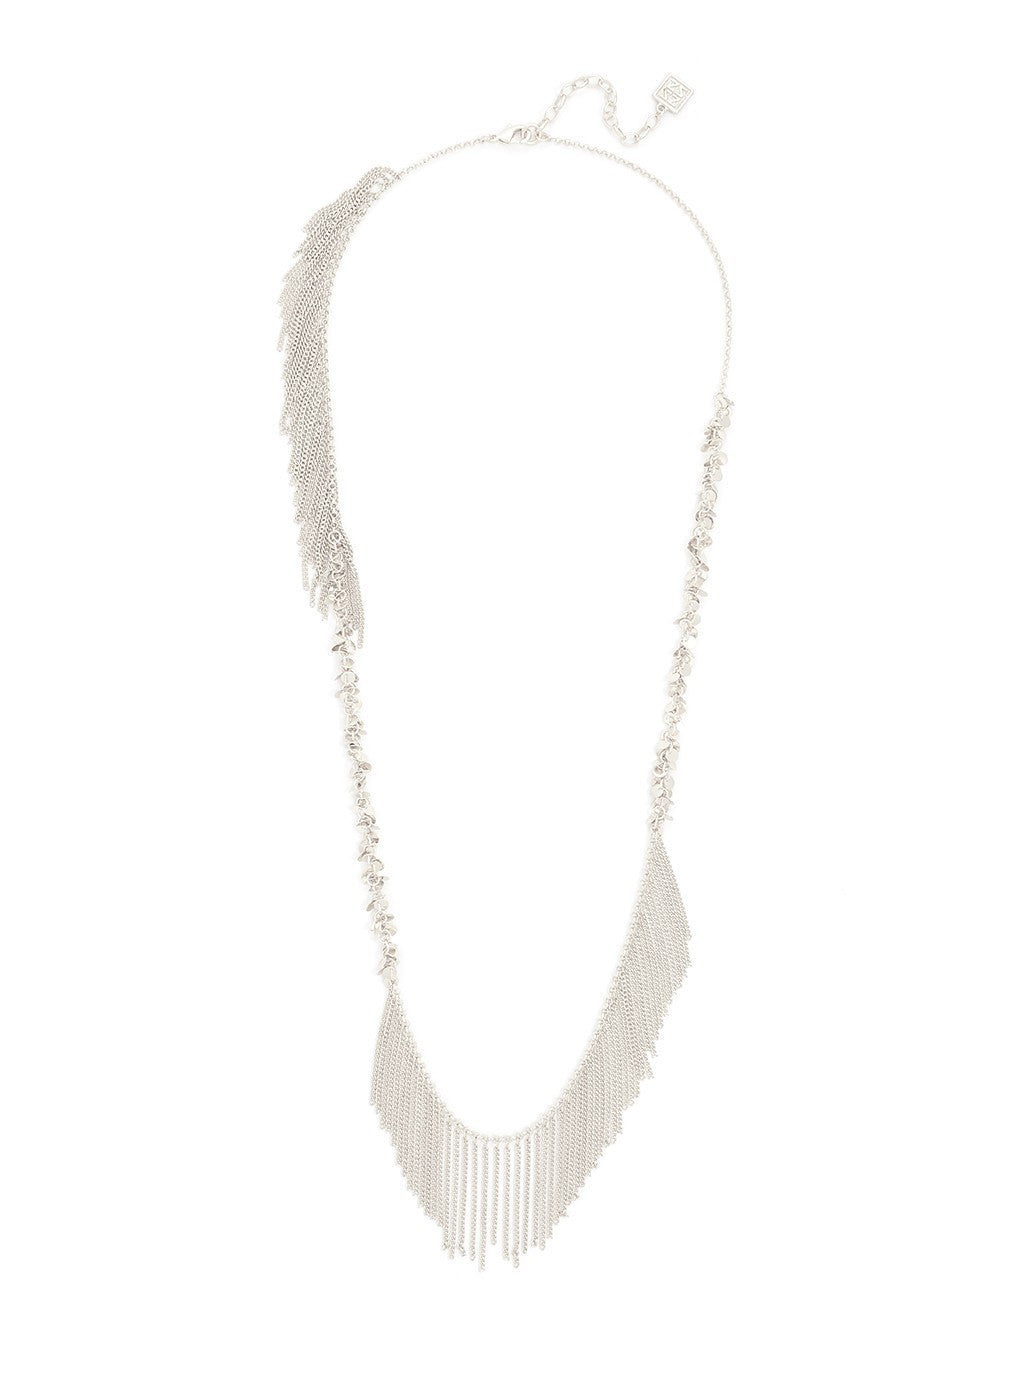 Metal Fringe and Small Disc Necklace - Koko & Palenki - 1